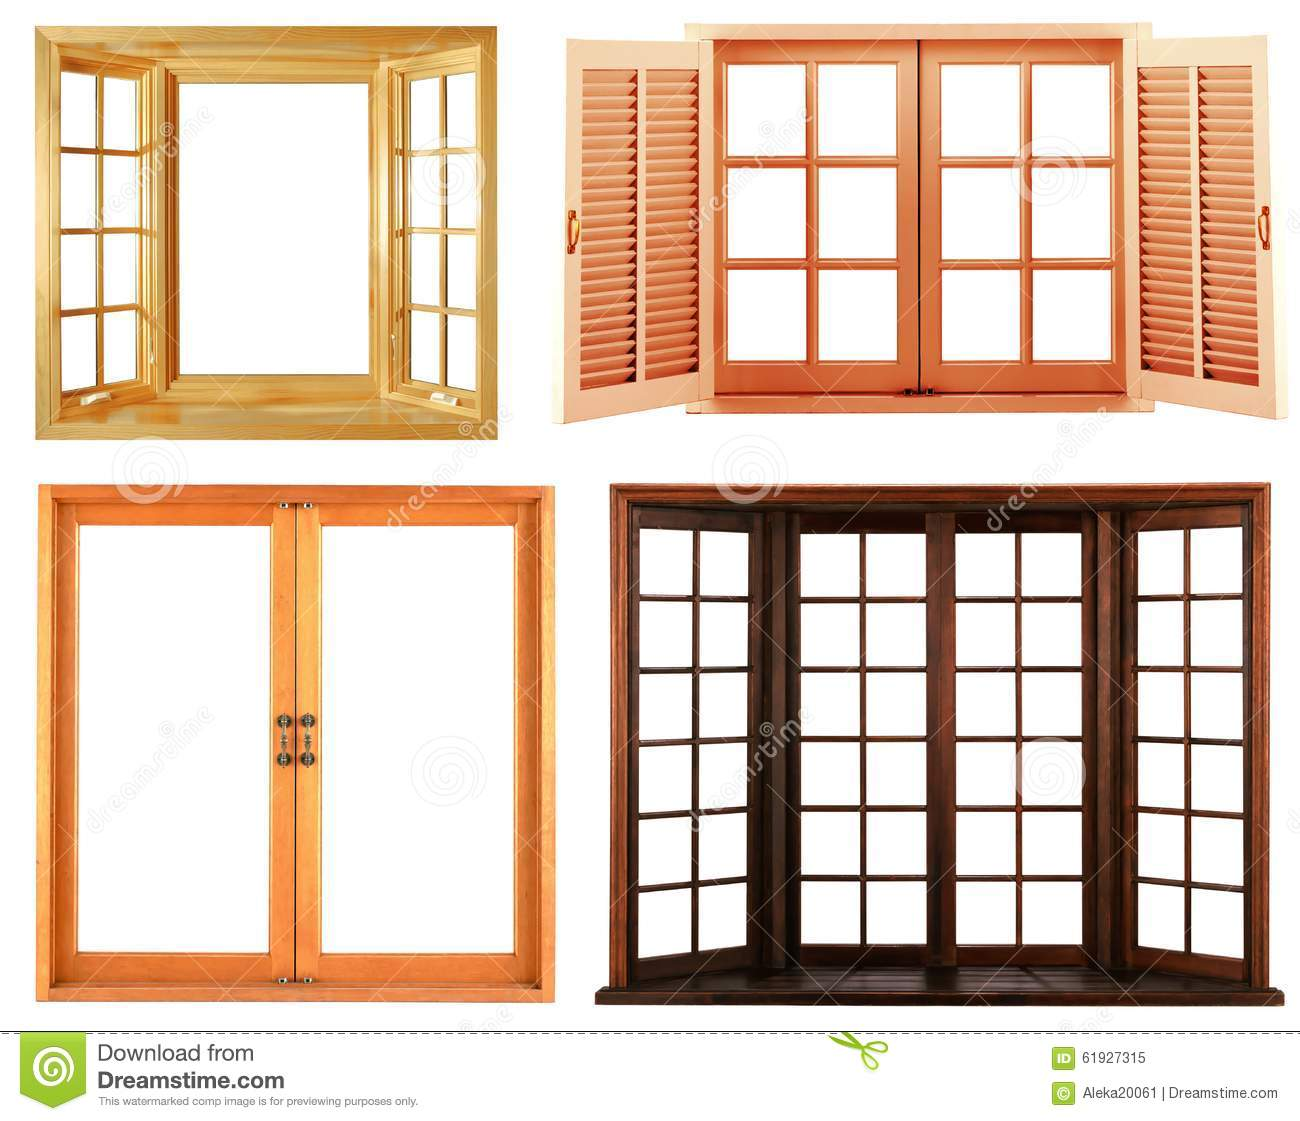 Different types of wooden window frame isolated stock for Window frame designs house design